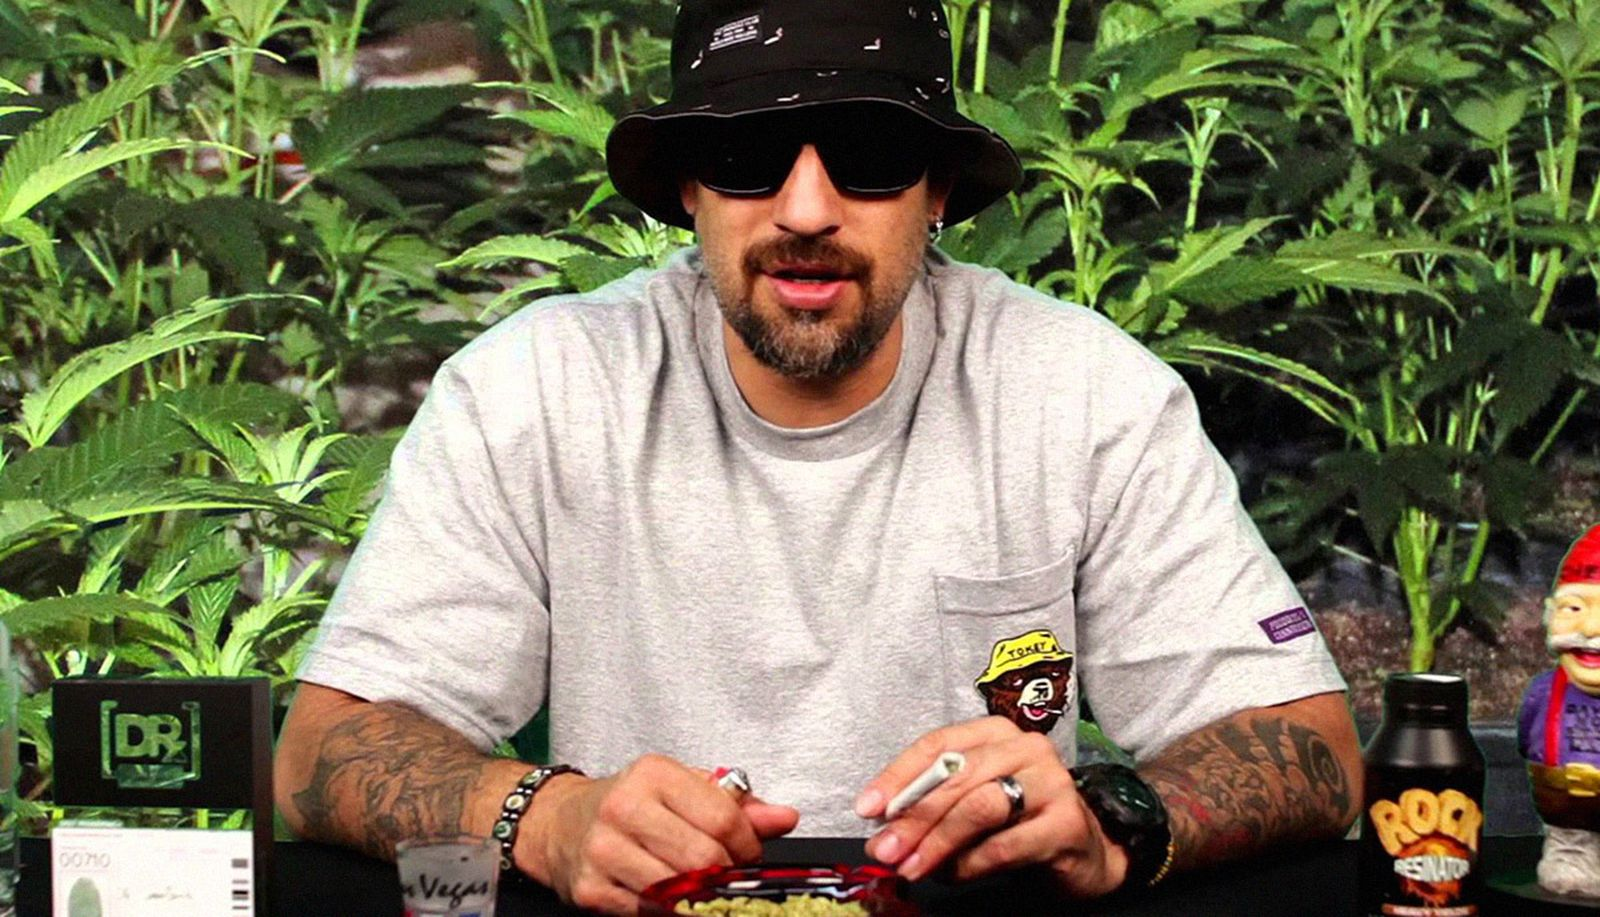 rappers-favorite-weed-b-real